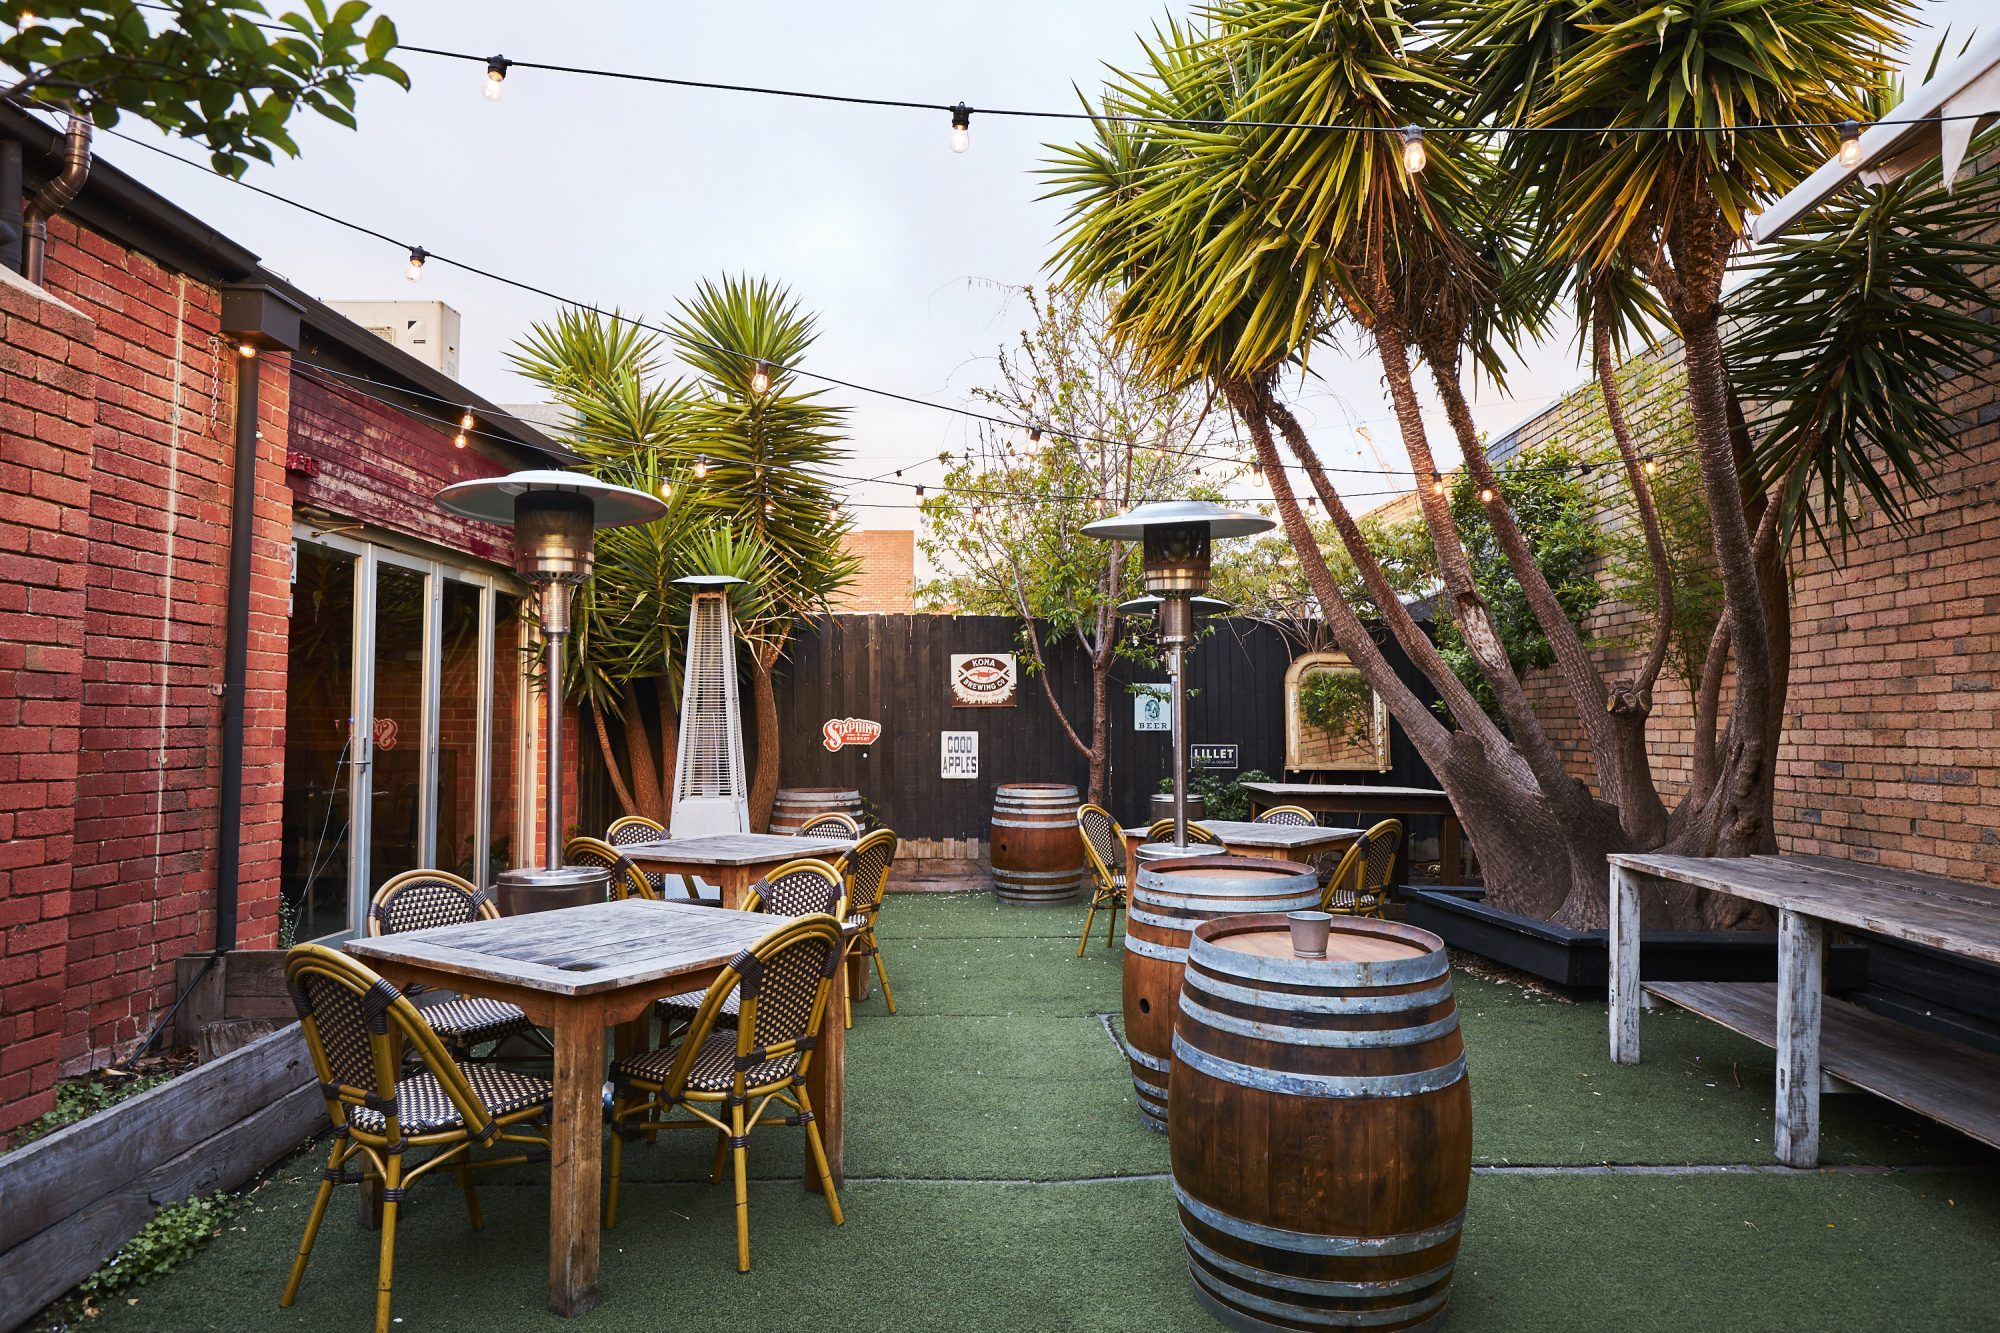 Le Bon Ton is Melbourne's slice of the American South